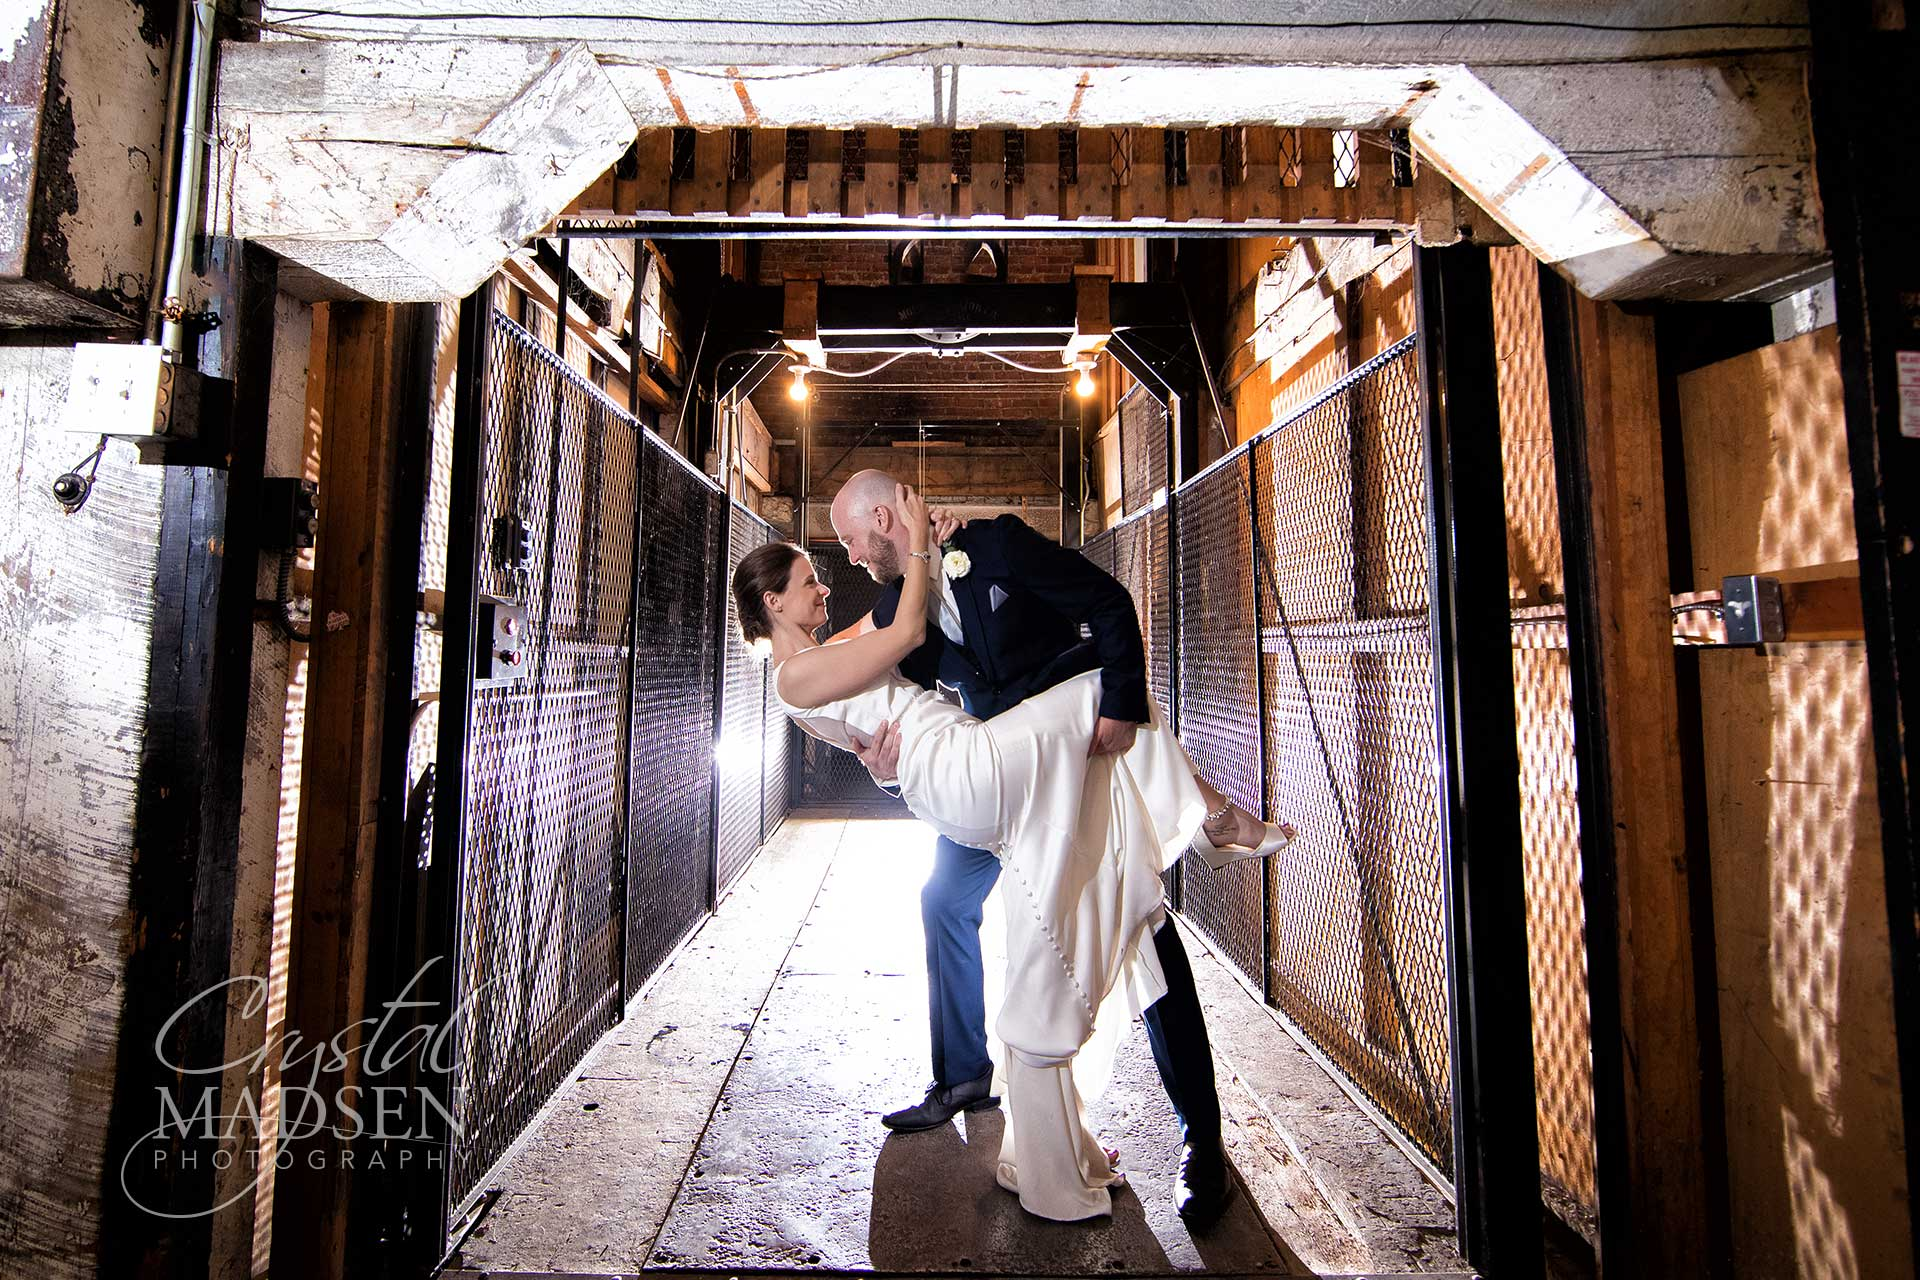 dynamic wedding photo in barrister winery